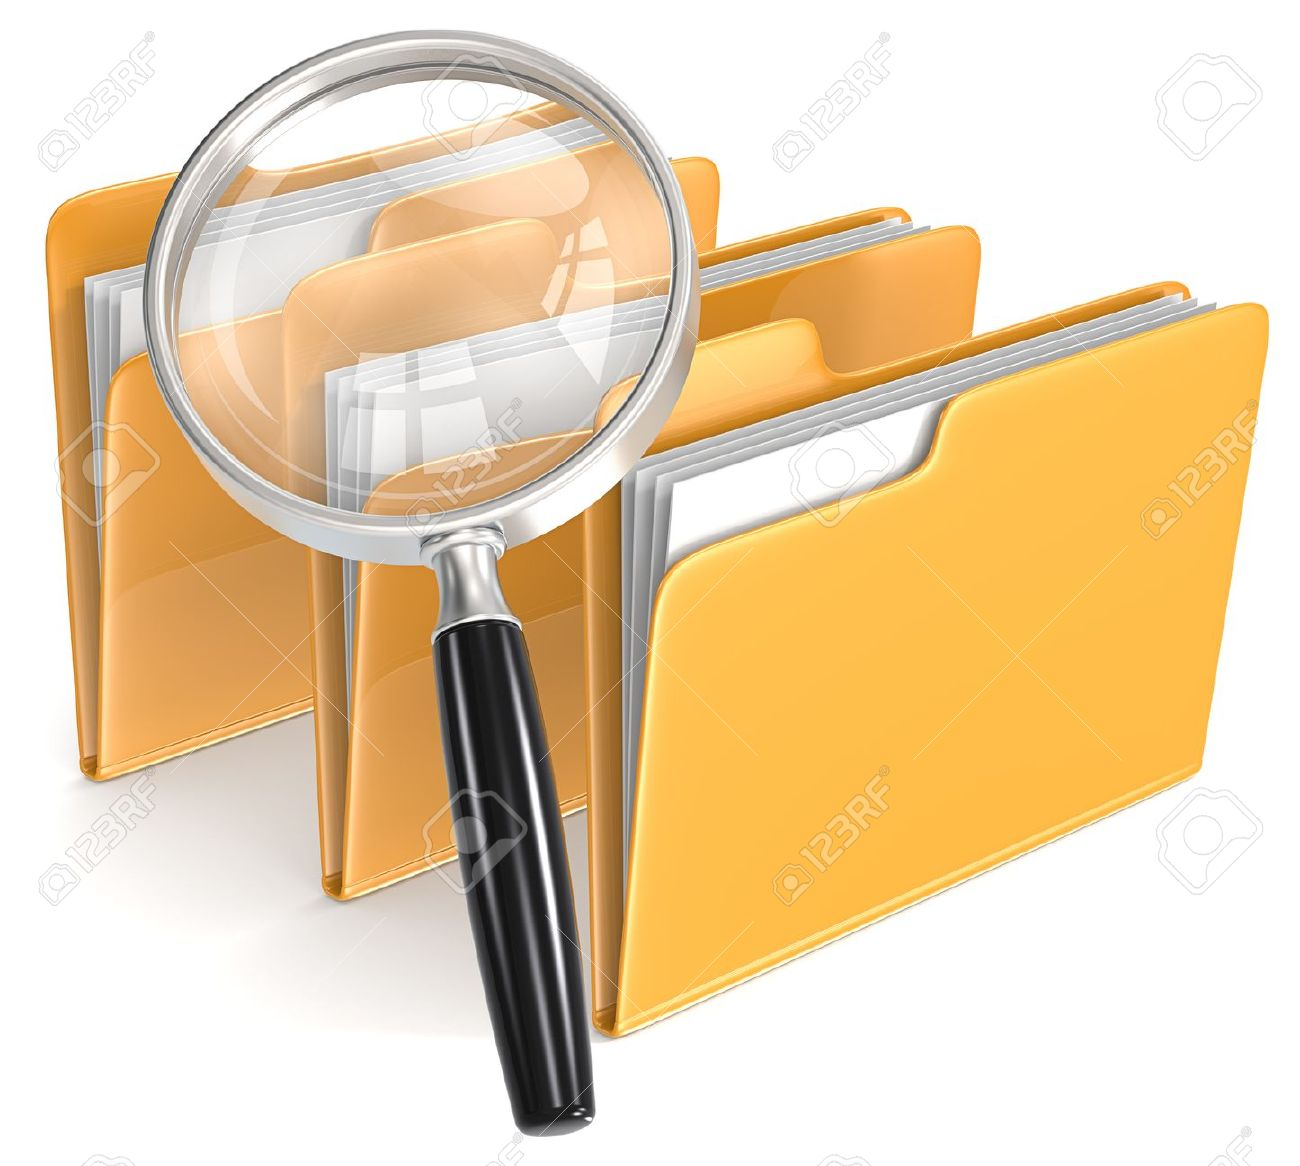 Search Magnifying Glass over 3 folders Stock Photo - 21454579